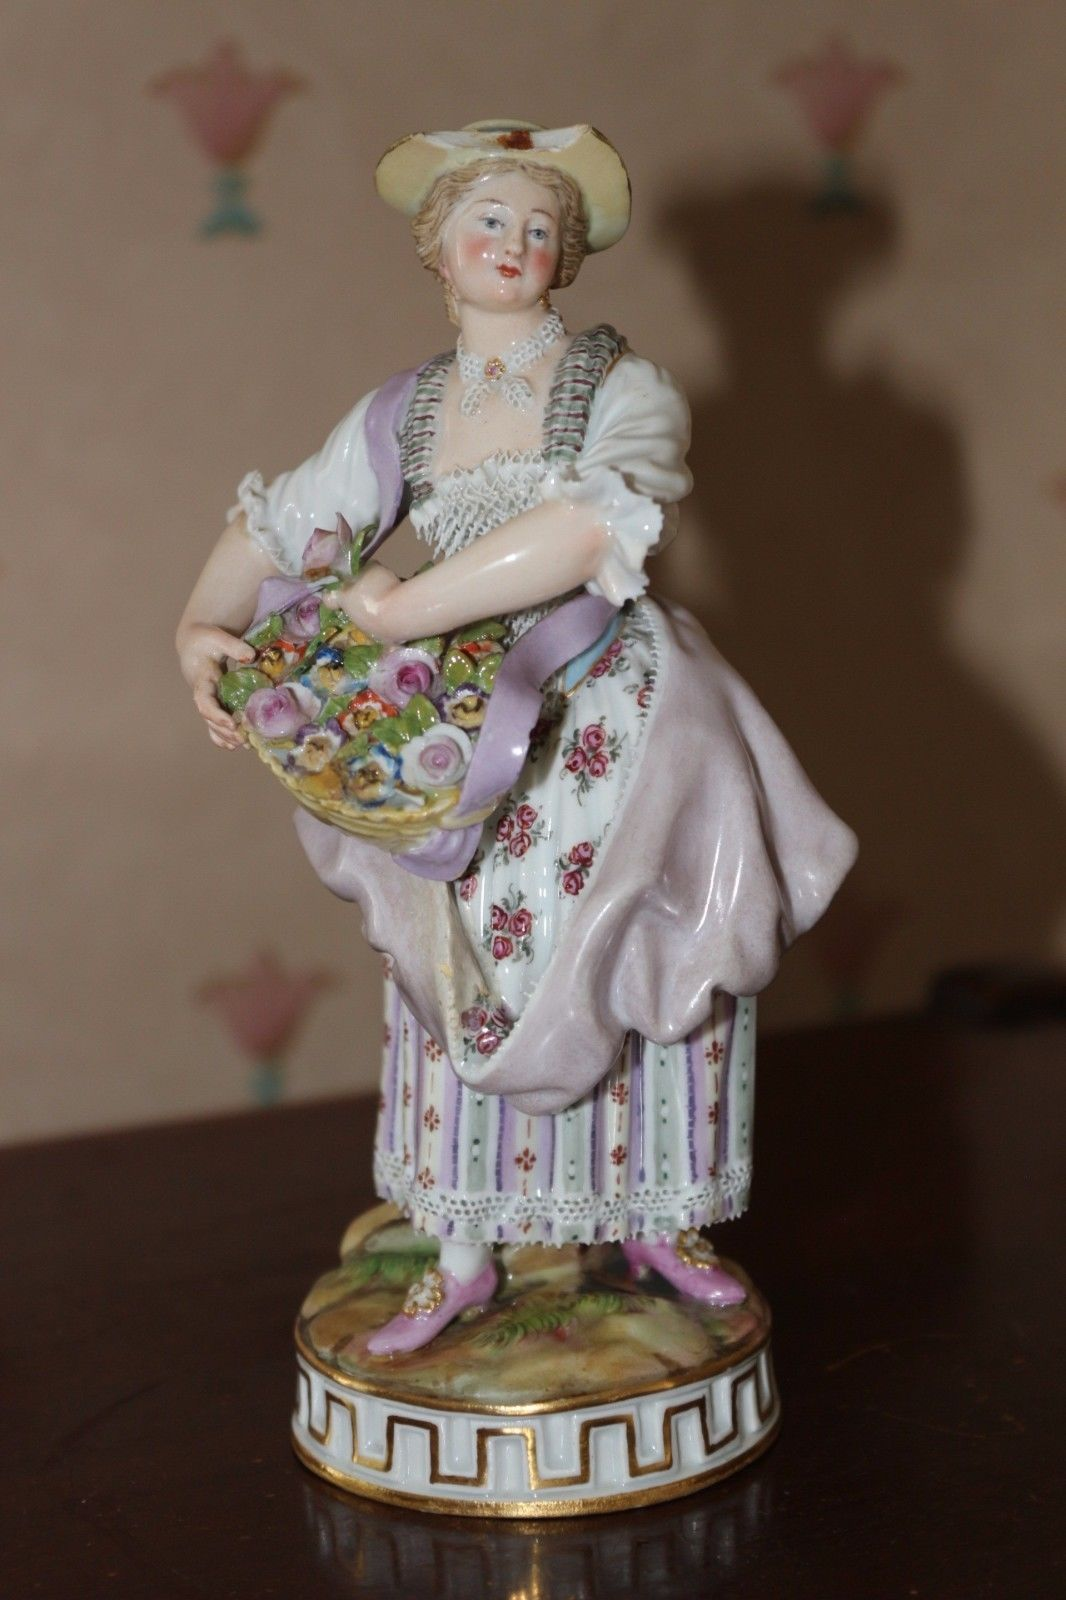 Meissen - figurine https://t.co/I4Wfpg0D1k https://t.co/FYuPcQ475Z